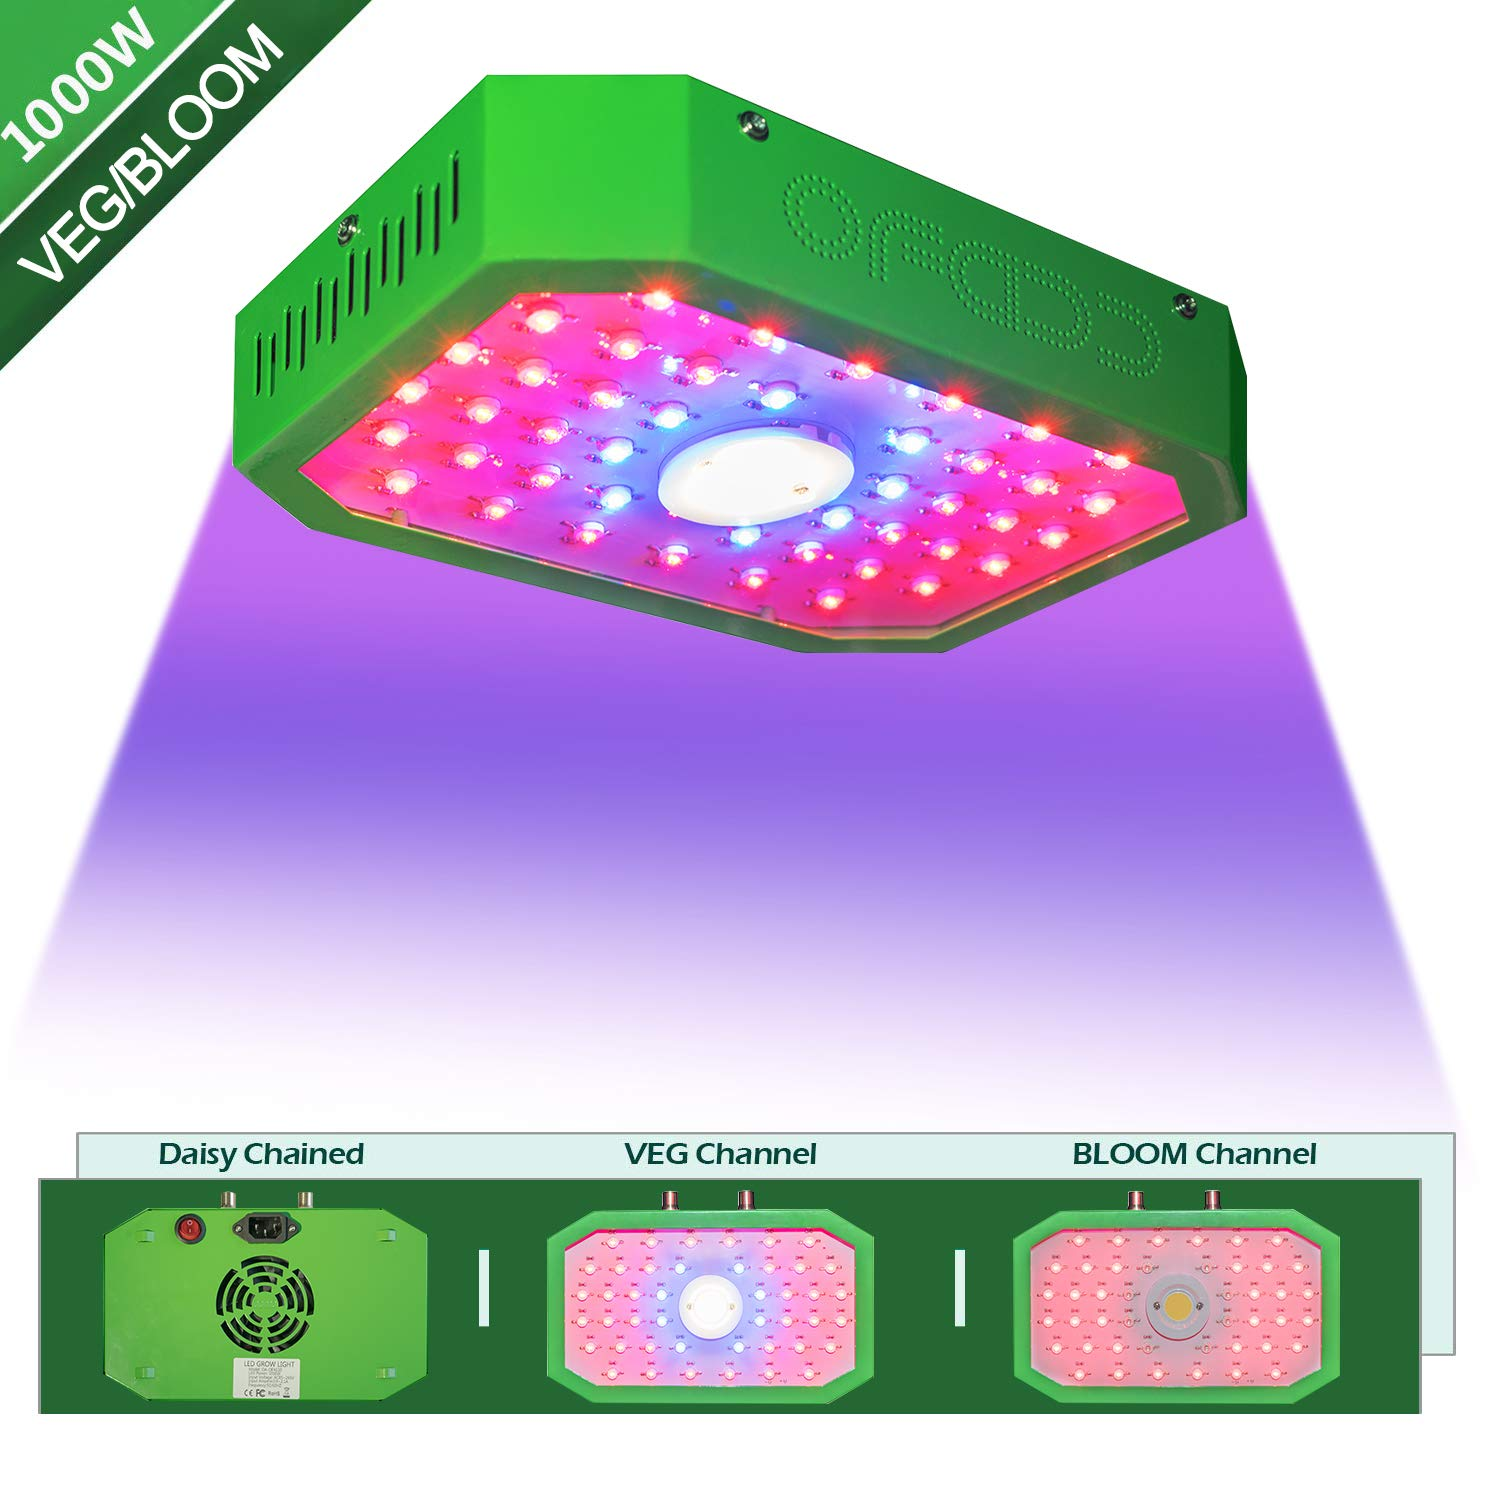 COB 1000W Led Grow Light Full Spectrum Plant Light Growing Lamps with Veg&Bloom Switch for Greenhouse Hydroponic Indoor Plants Veg and Flower(Dual Chip) by OFAD